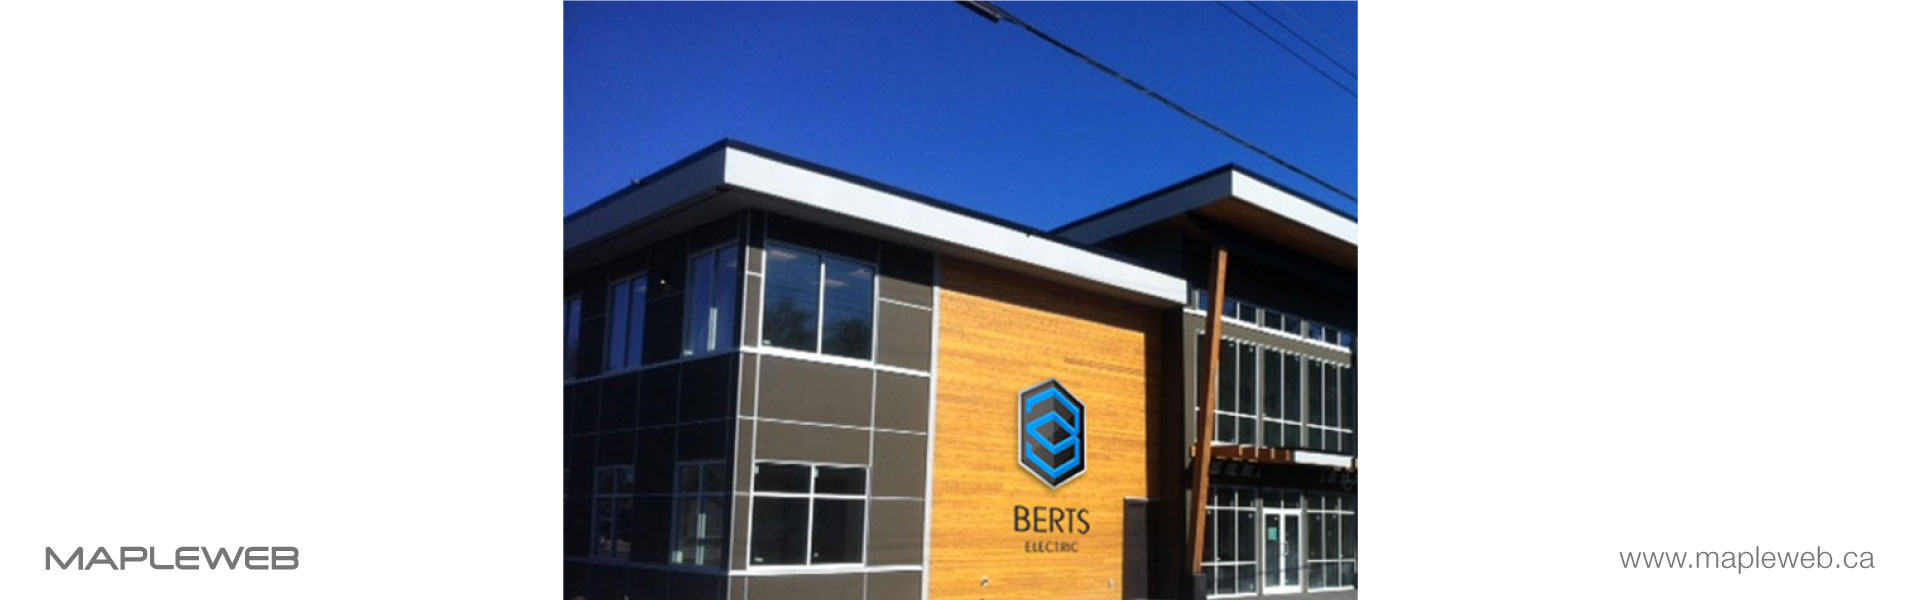 berts-electric-brand-logo-design-by-mapleweb-vancouver-canada-building-mock